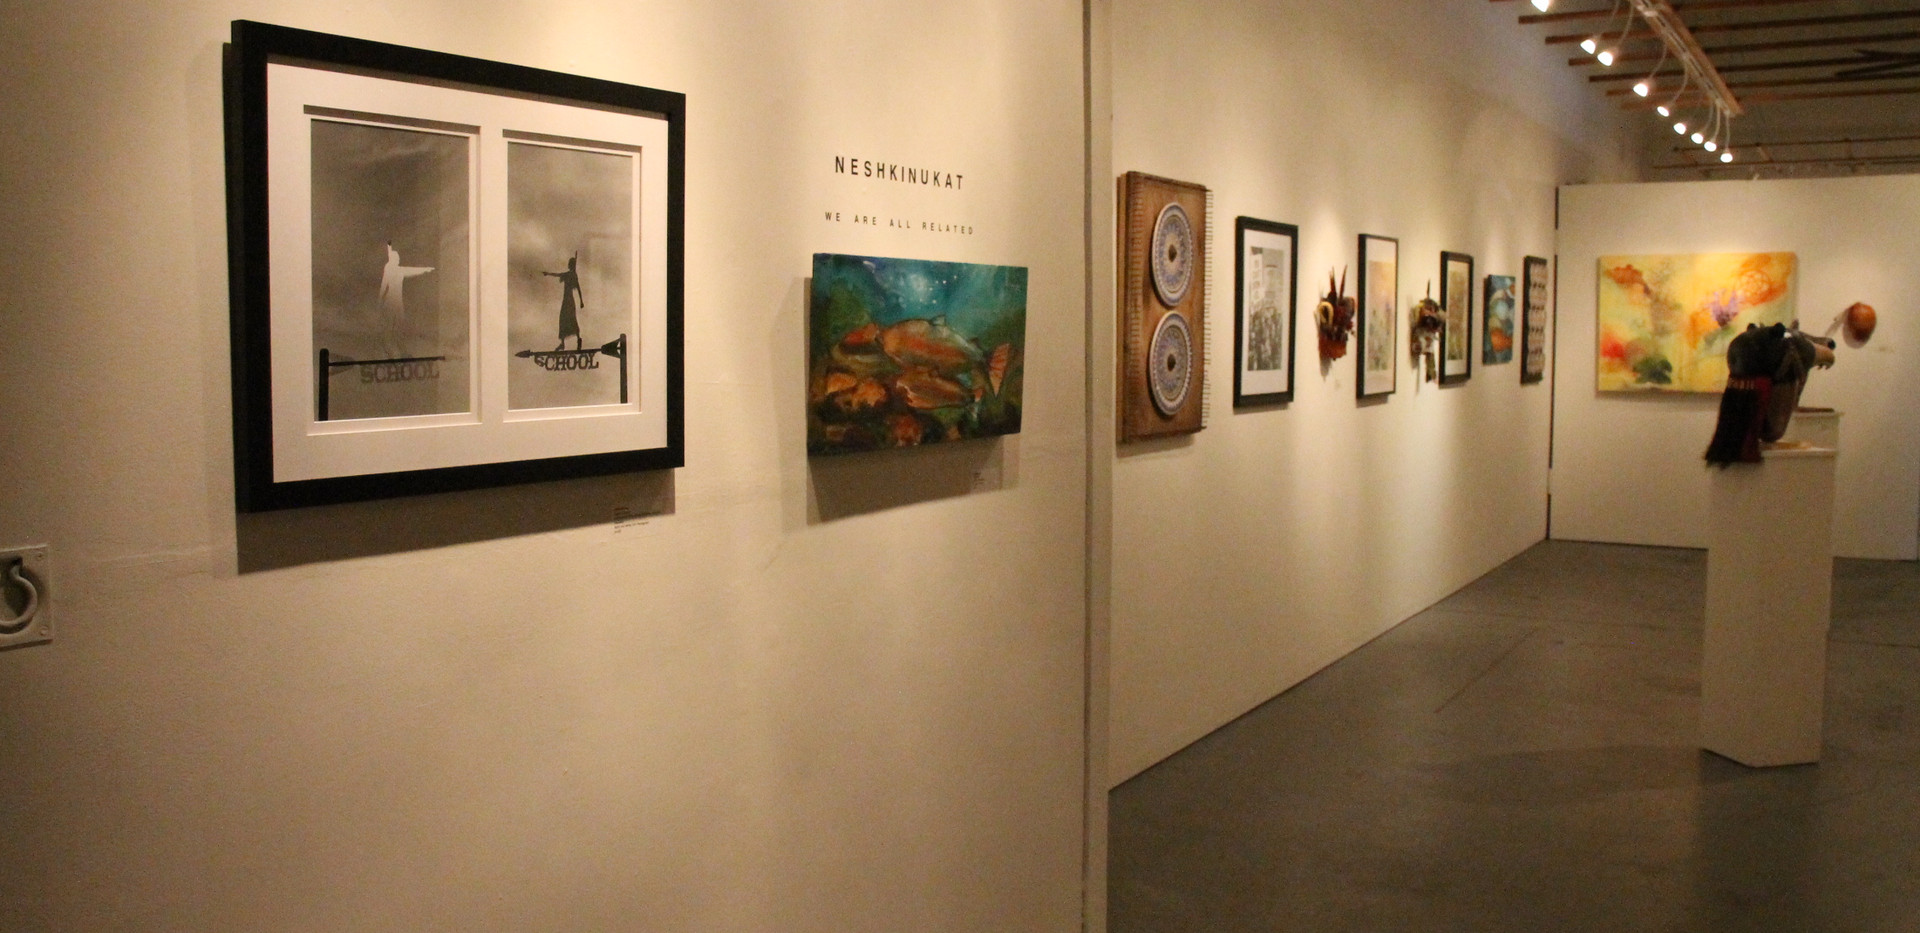 Greenly's Gallery Show